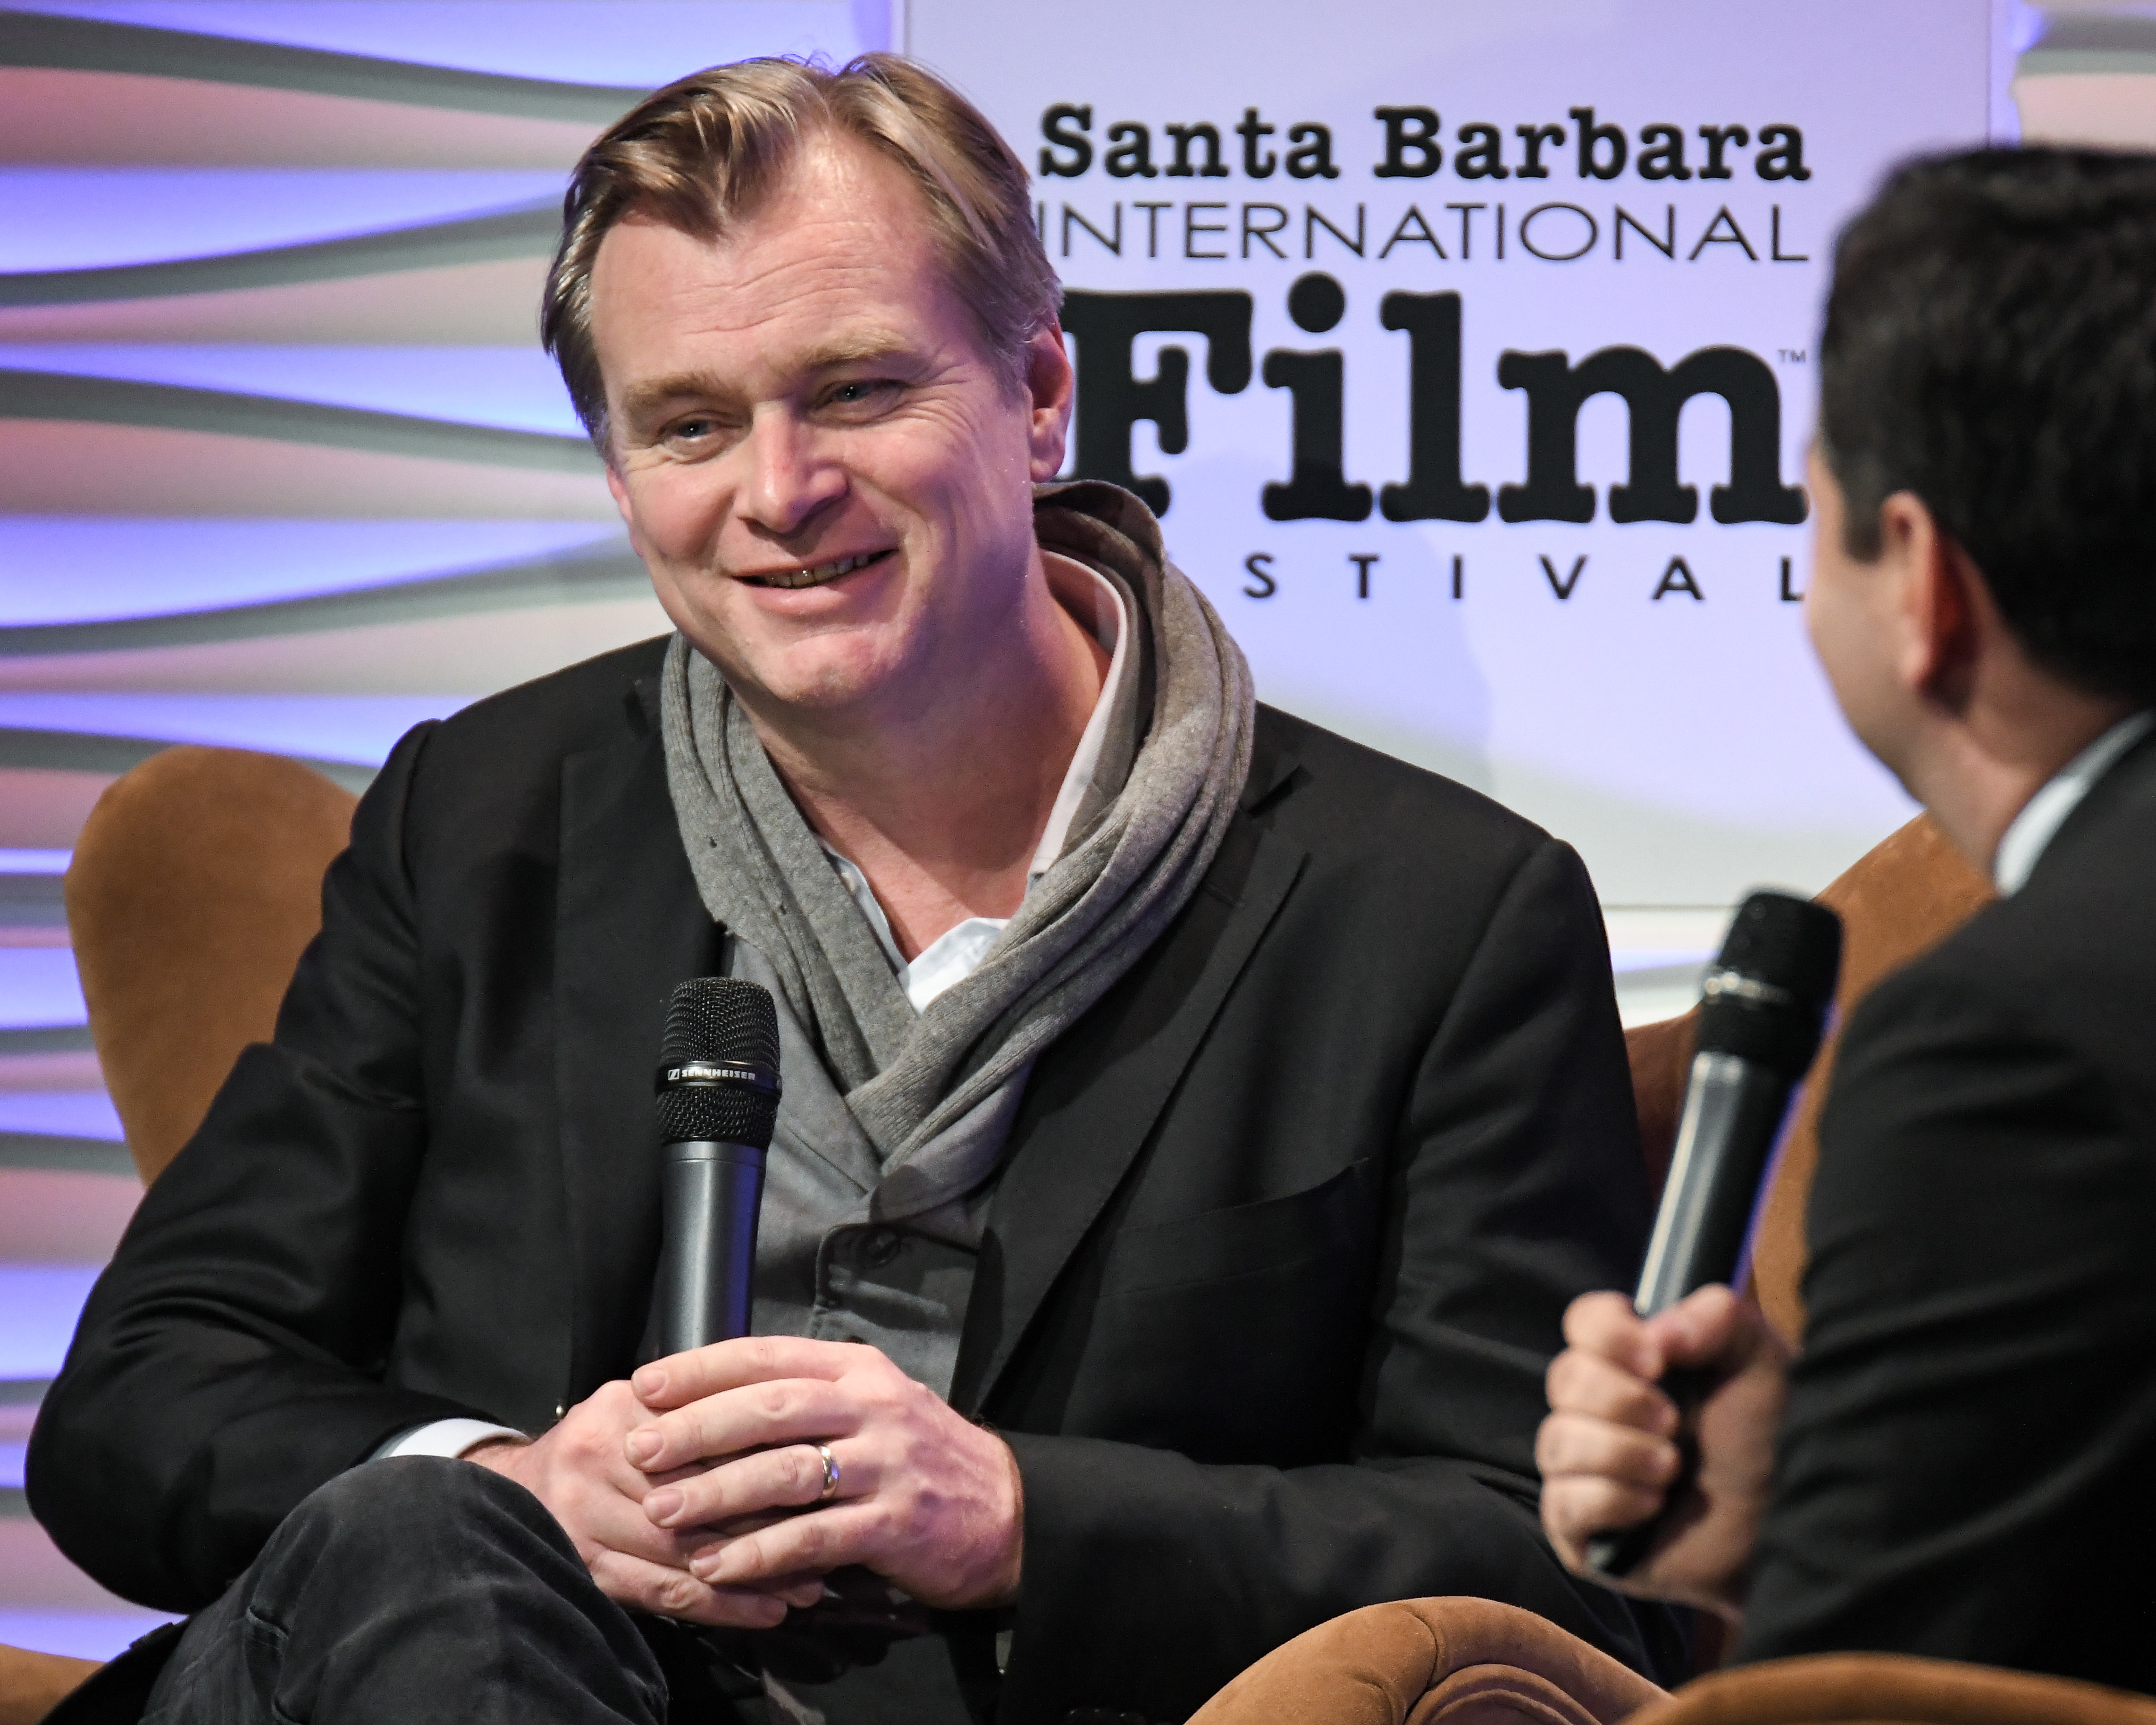 Christopher Nolan and Scott Feinberg Outstanding Directors of the Year Award, Show, 33rd Santa Barbara International Film Festival, USA - 06 Feb 2018